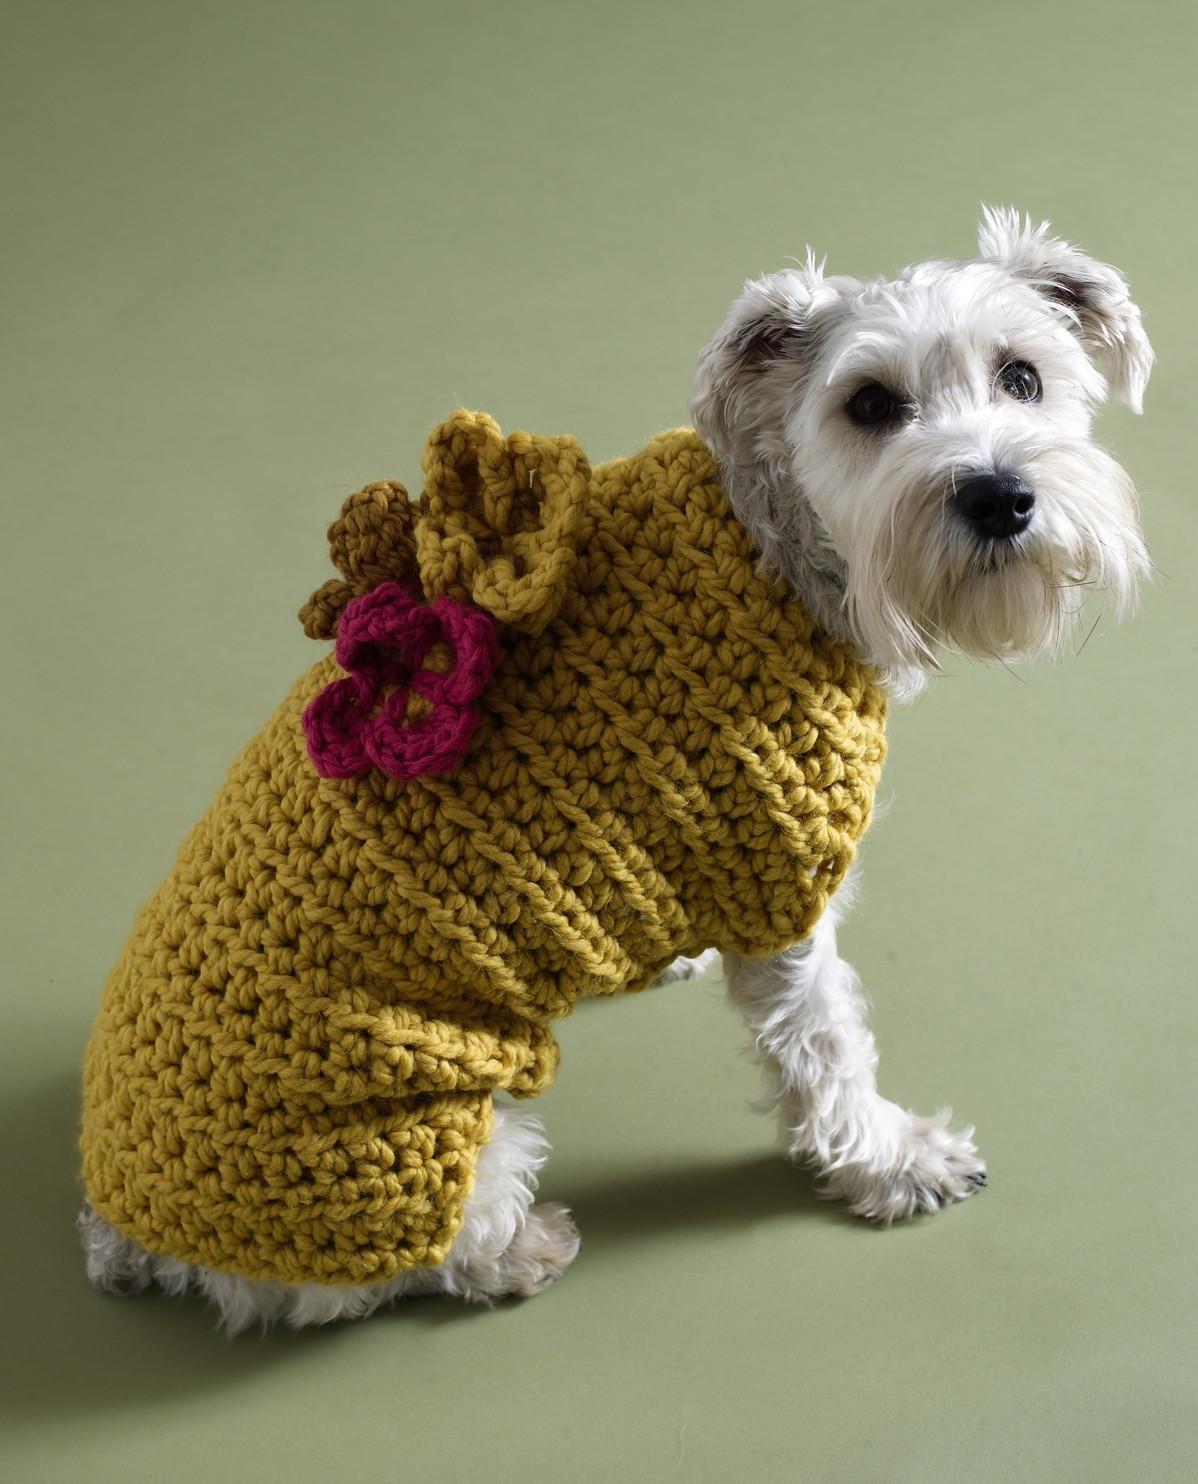 Crochet Dog Sweater with Legs Awesome Crochet Dog Coat Of Gorgeous 40 Images Crochet Dog Sweater with Legs